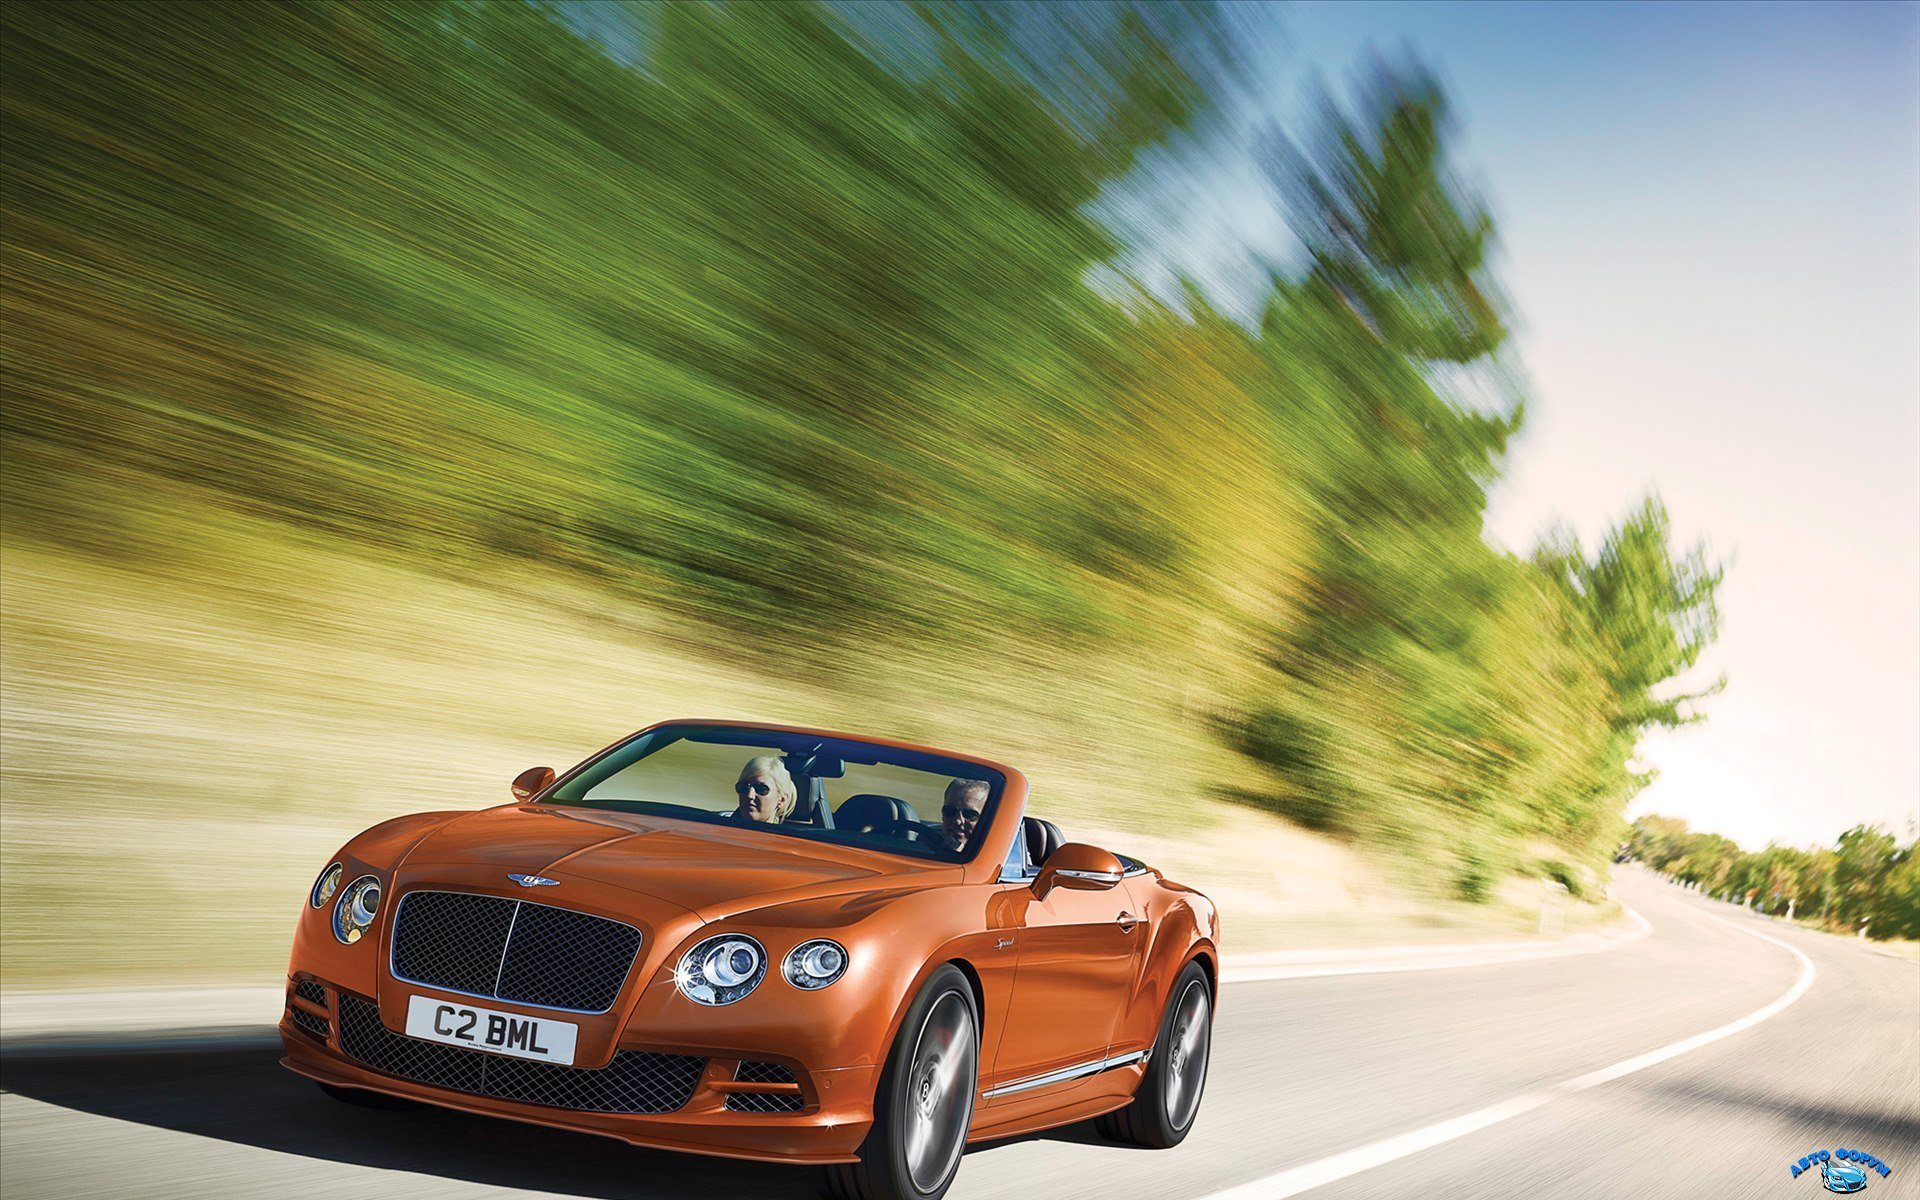 Bentley-Continental-GT-Speed-Convertible-2015-widescreen-01.jpg